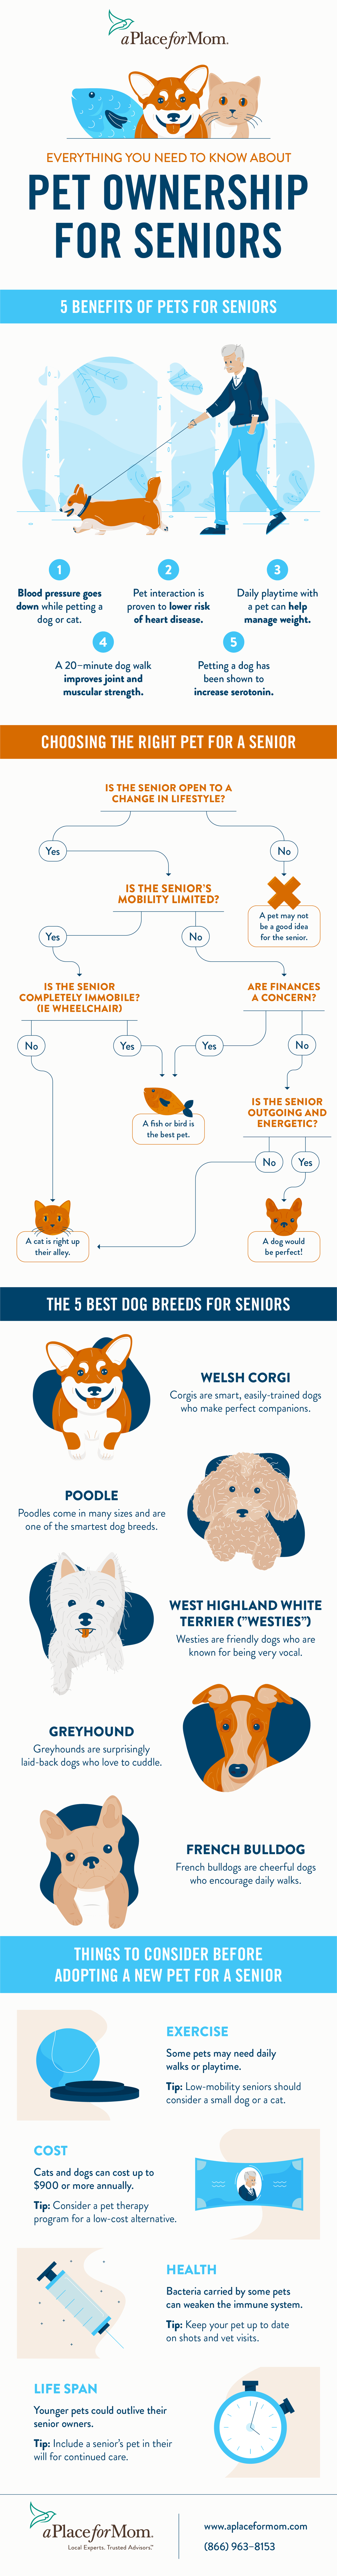 The Complete Guide To Pet Ownership For Seniors A Place For Mom